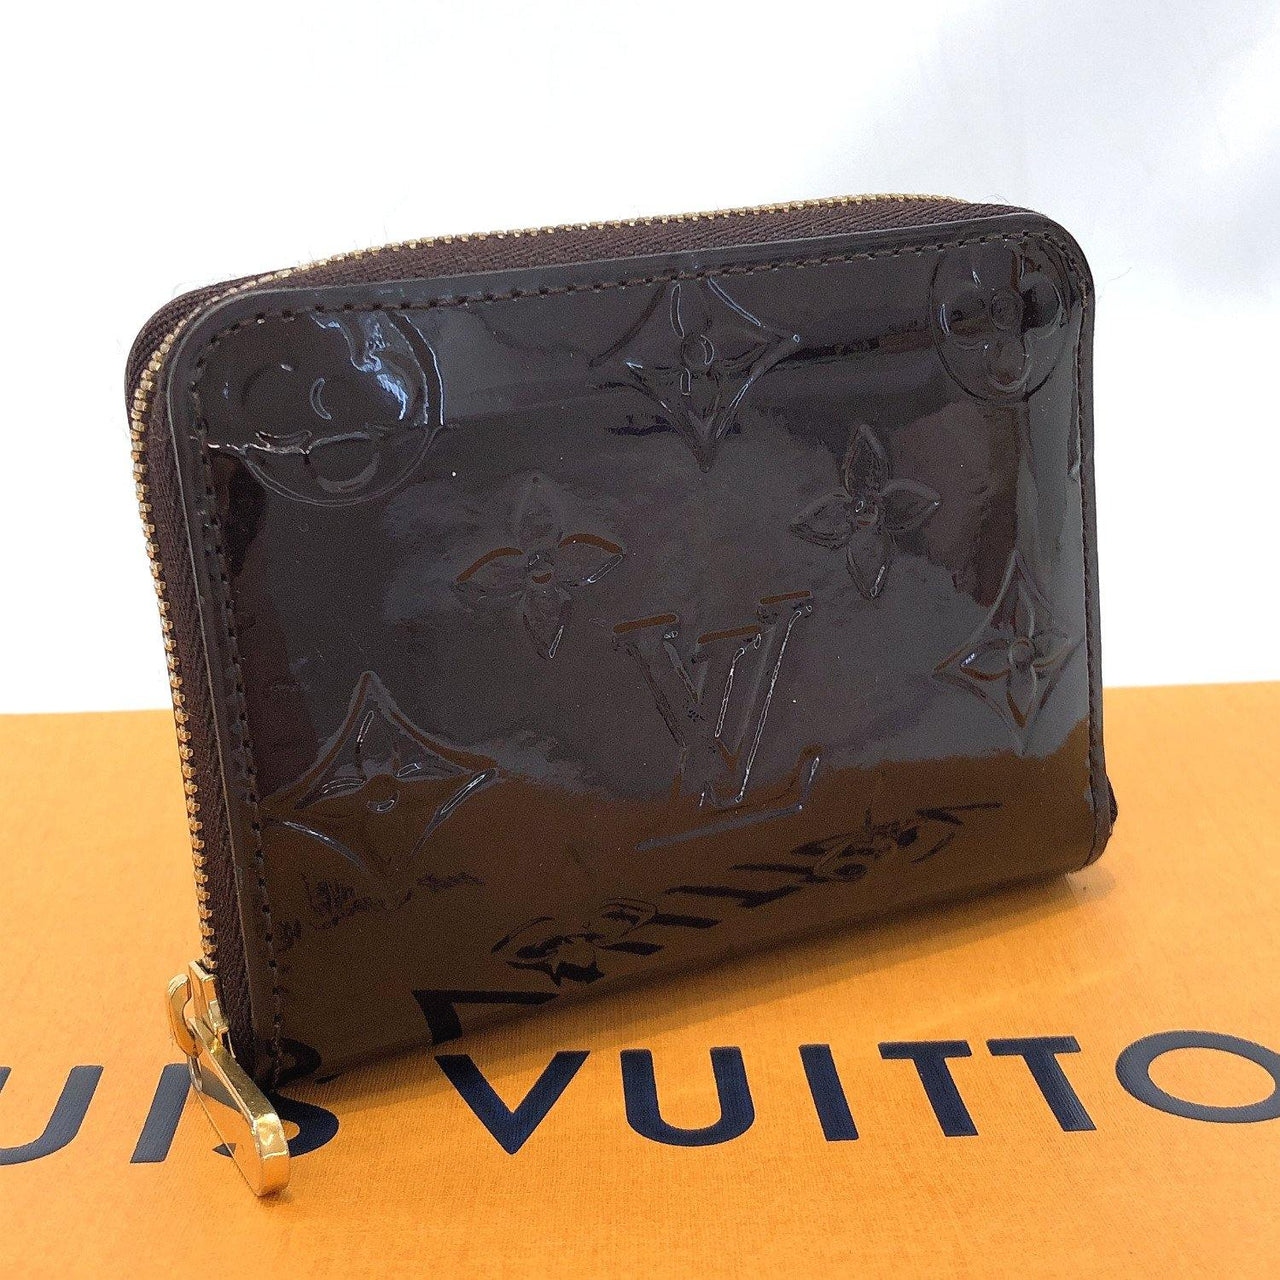 LOUIS VUITTON coin purse M93607 zip around purse Monogram Vernis purple Women Used - JP-BRANDS.com